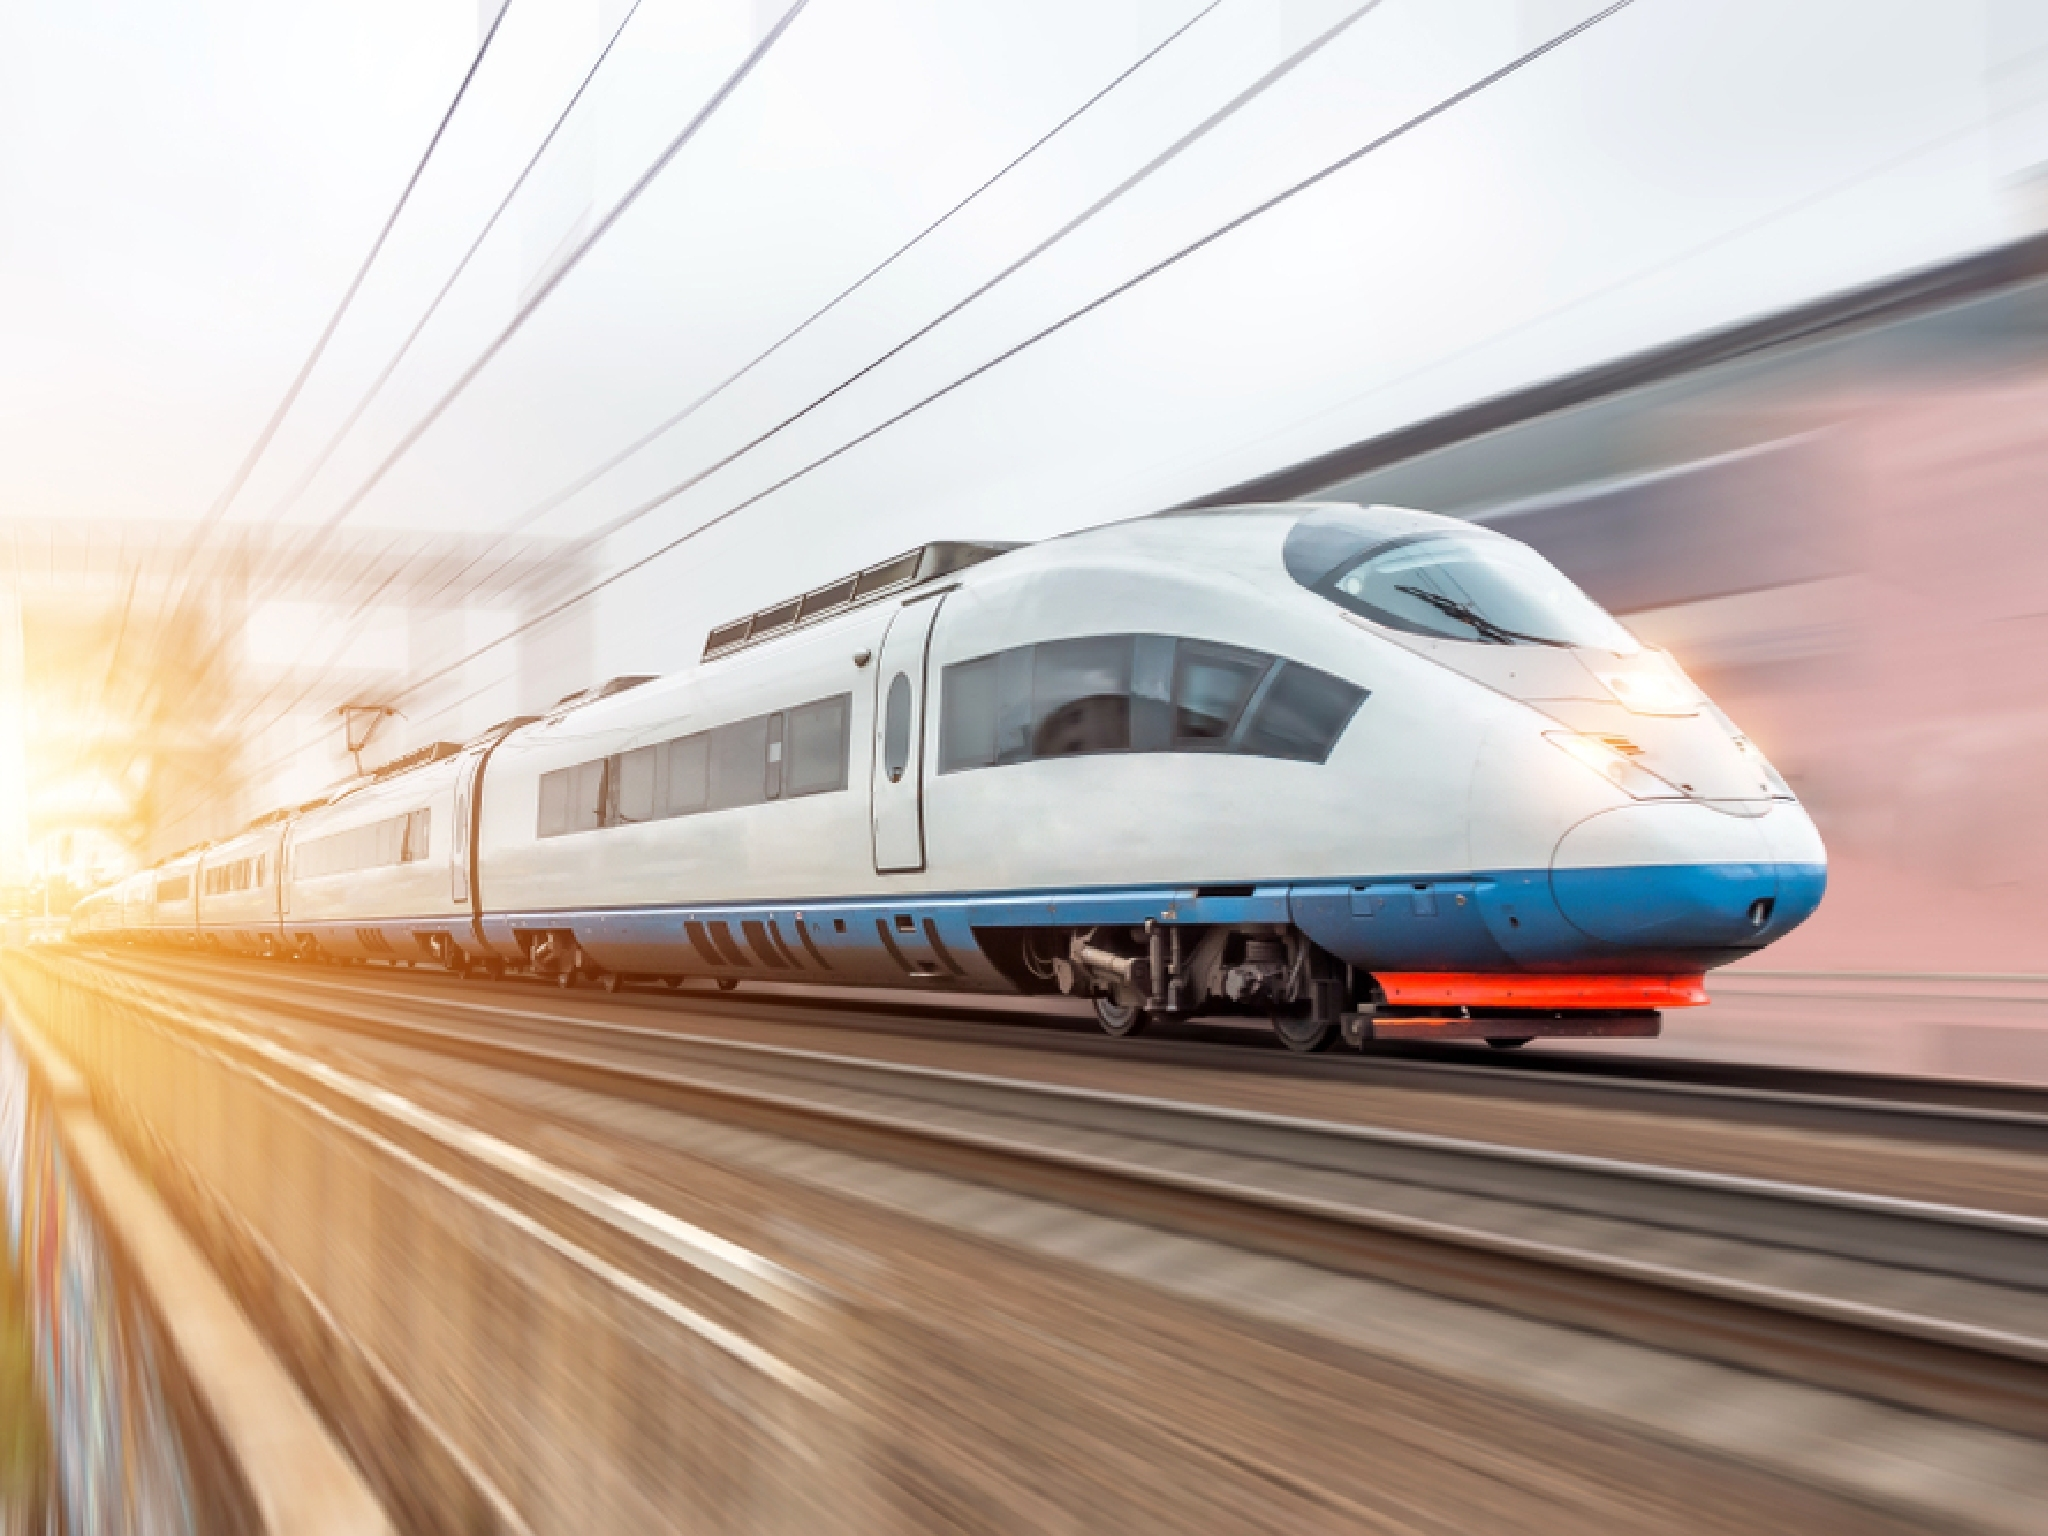 Europe might get a new high-speed train network